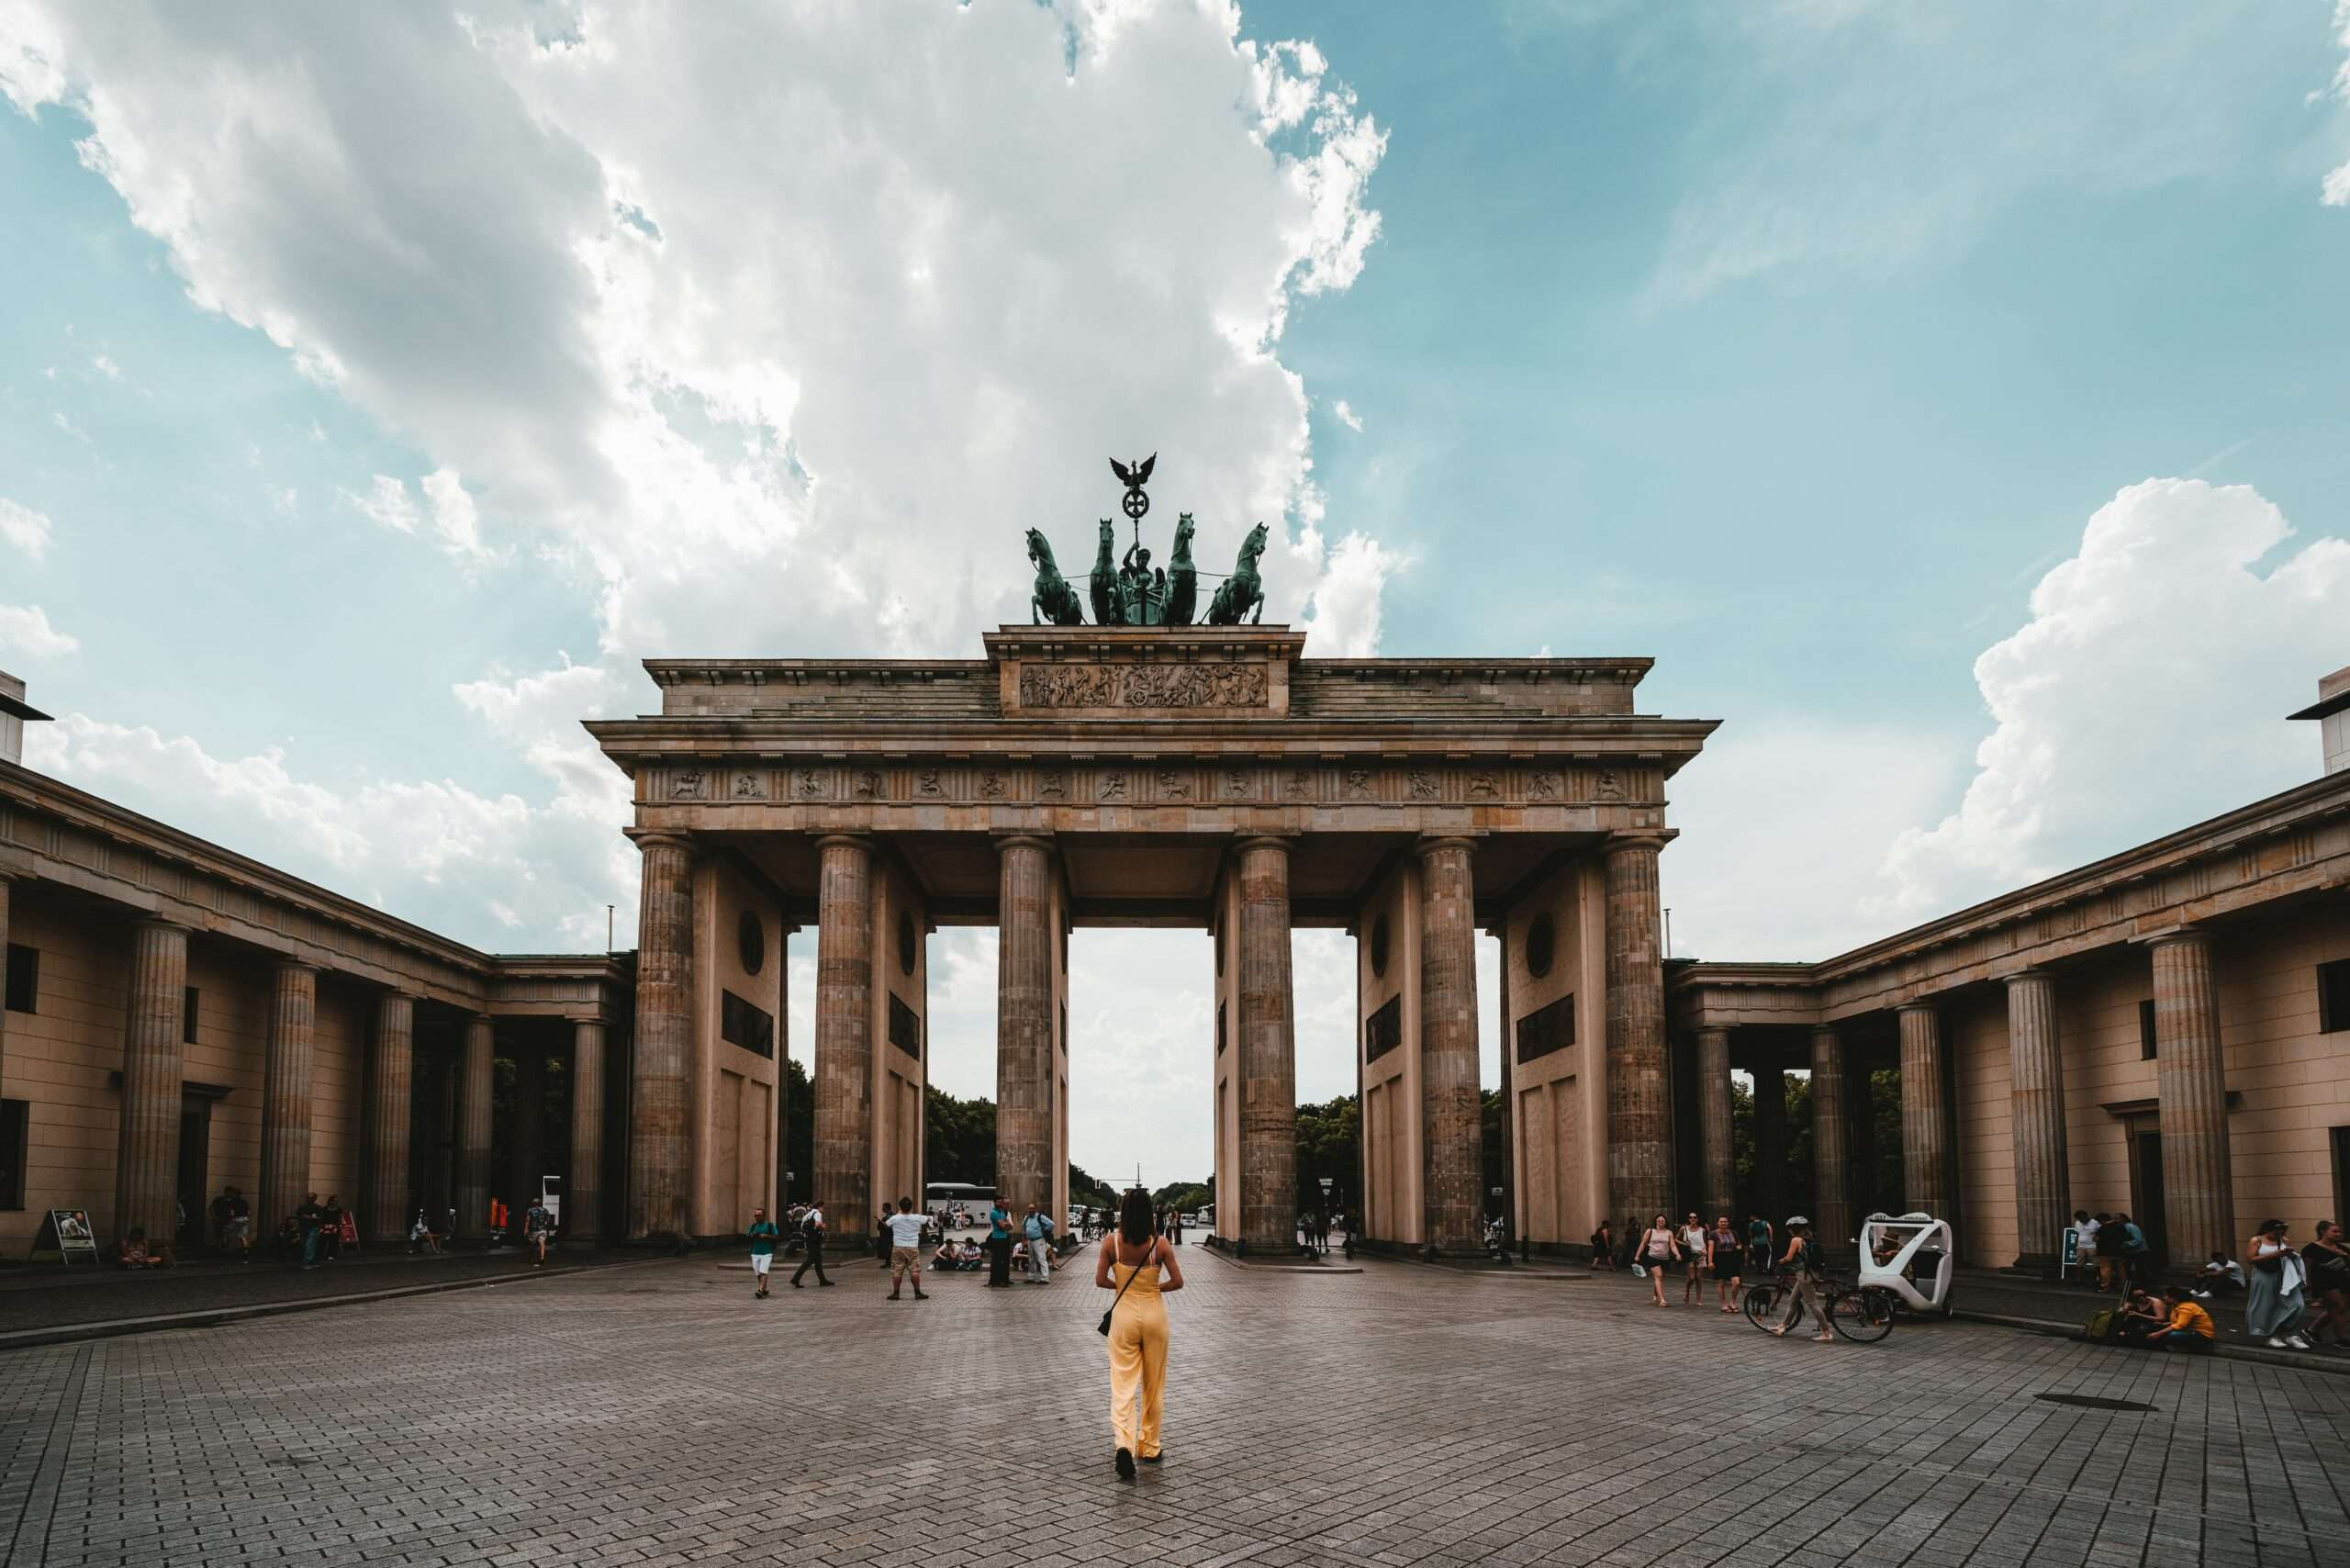 lady wearing yellow walks towards Brandenburg Gate in Berlin, Germany